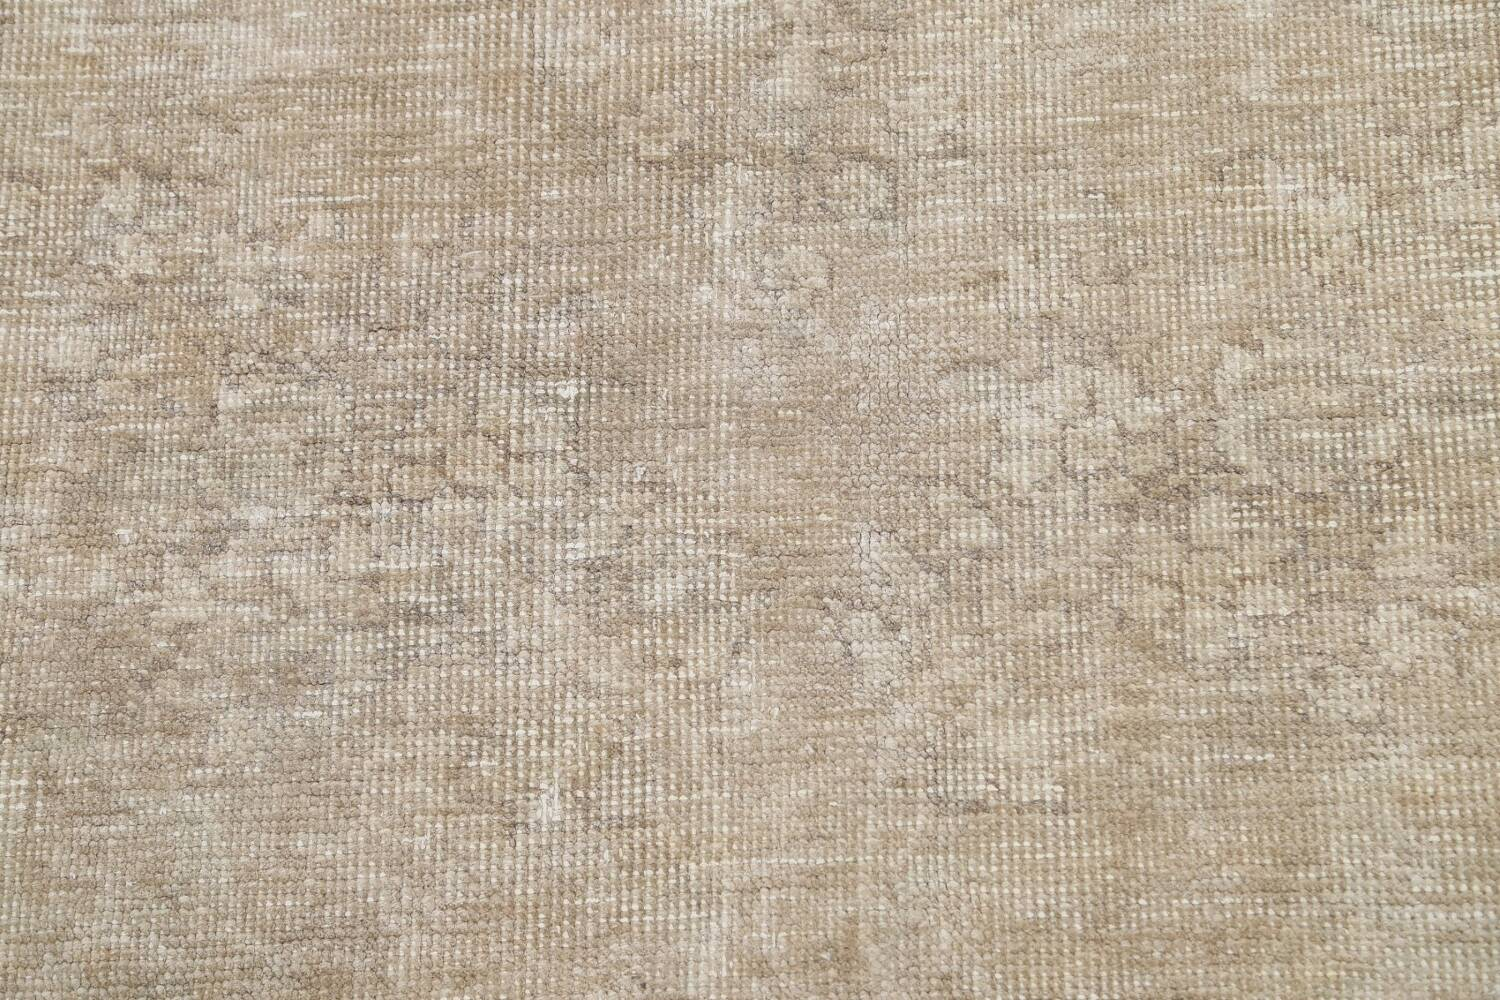 Muted Distressed Tabriz Persian Area Rug 9x12 image 10